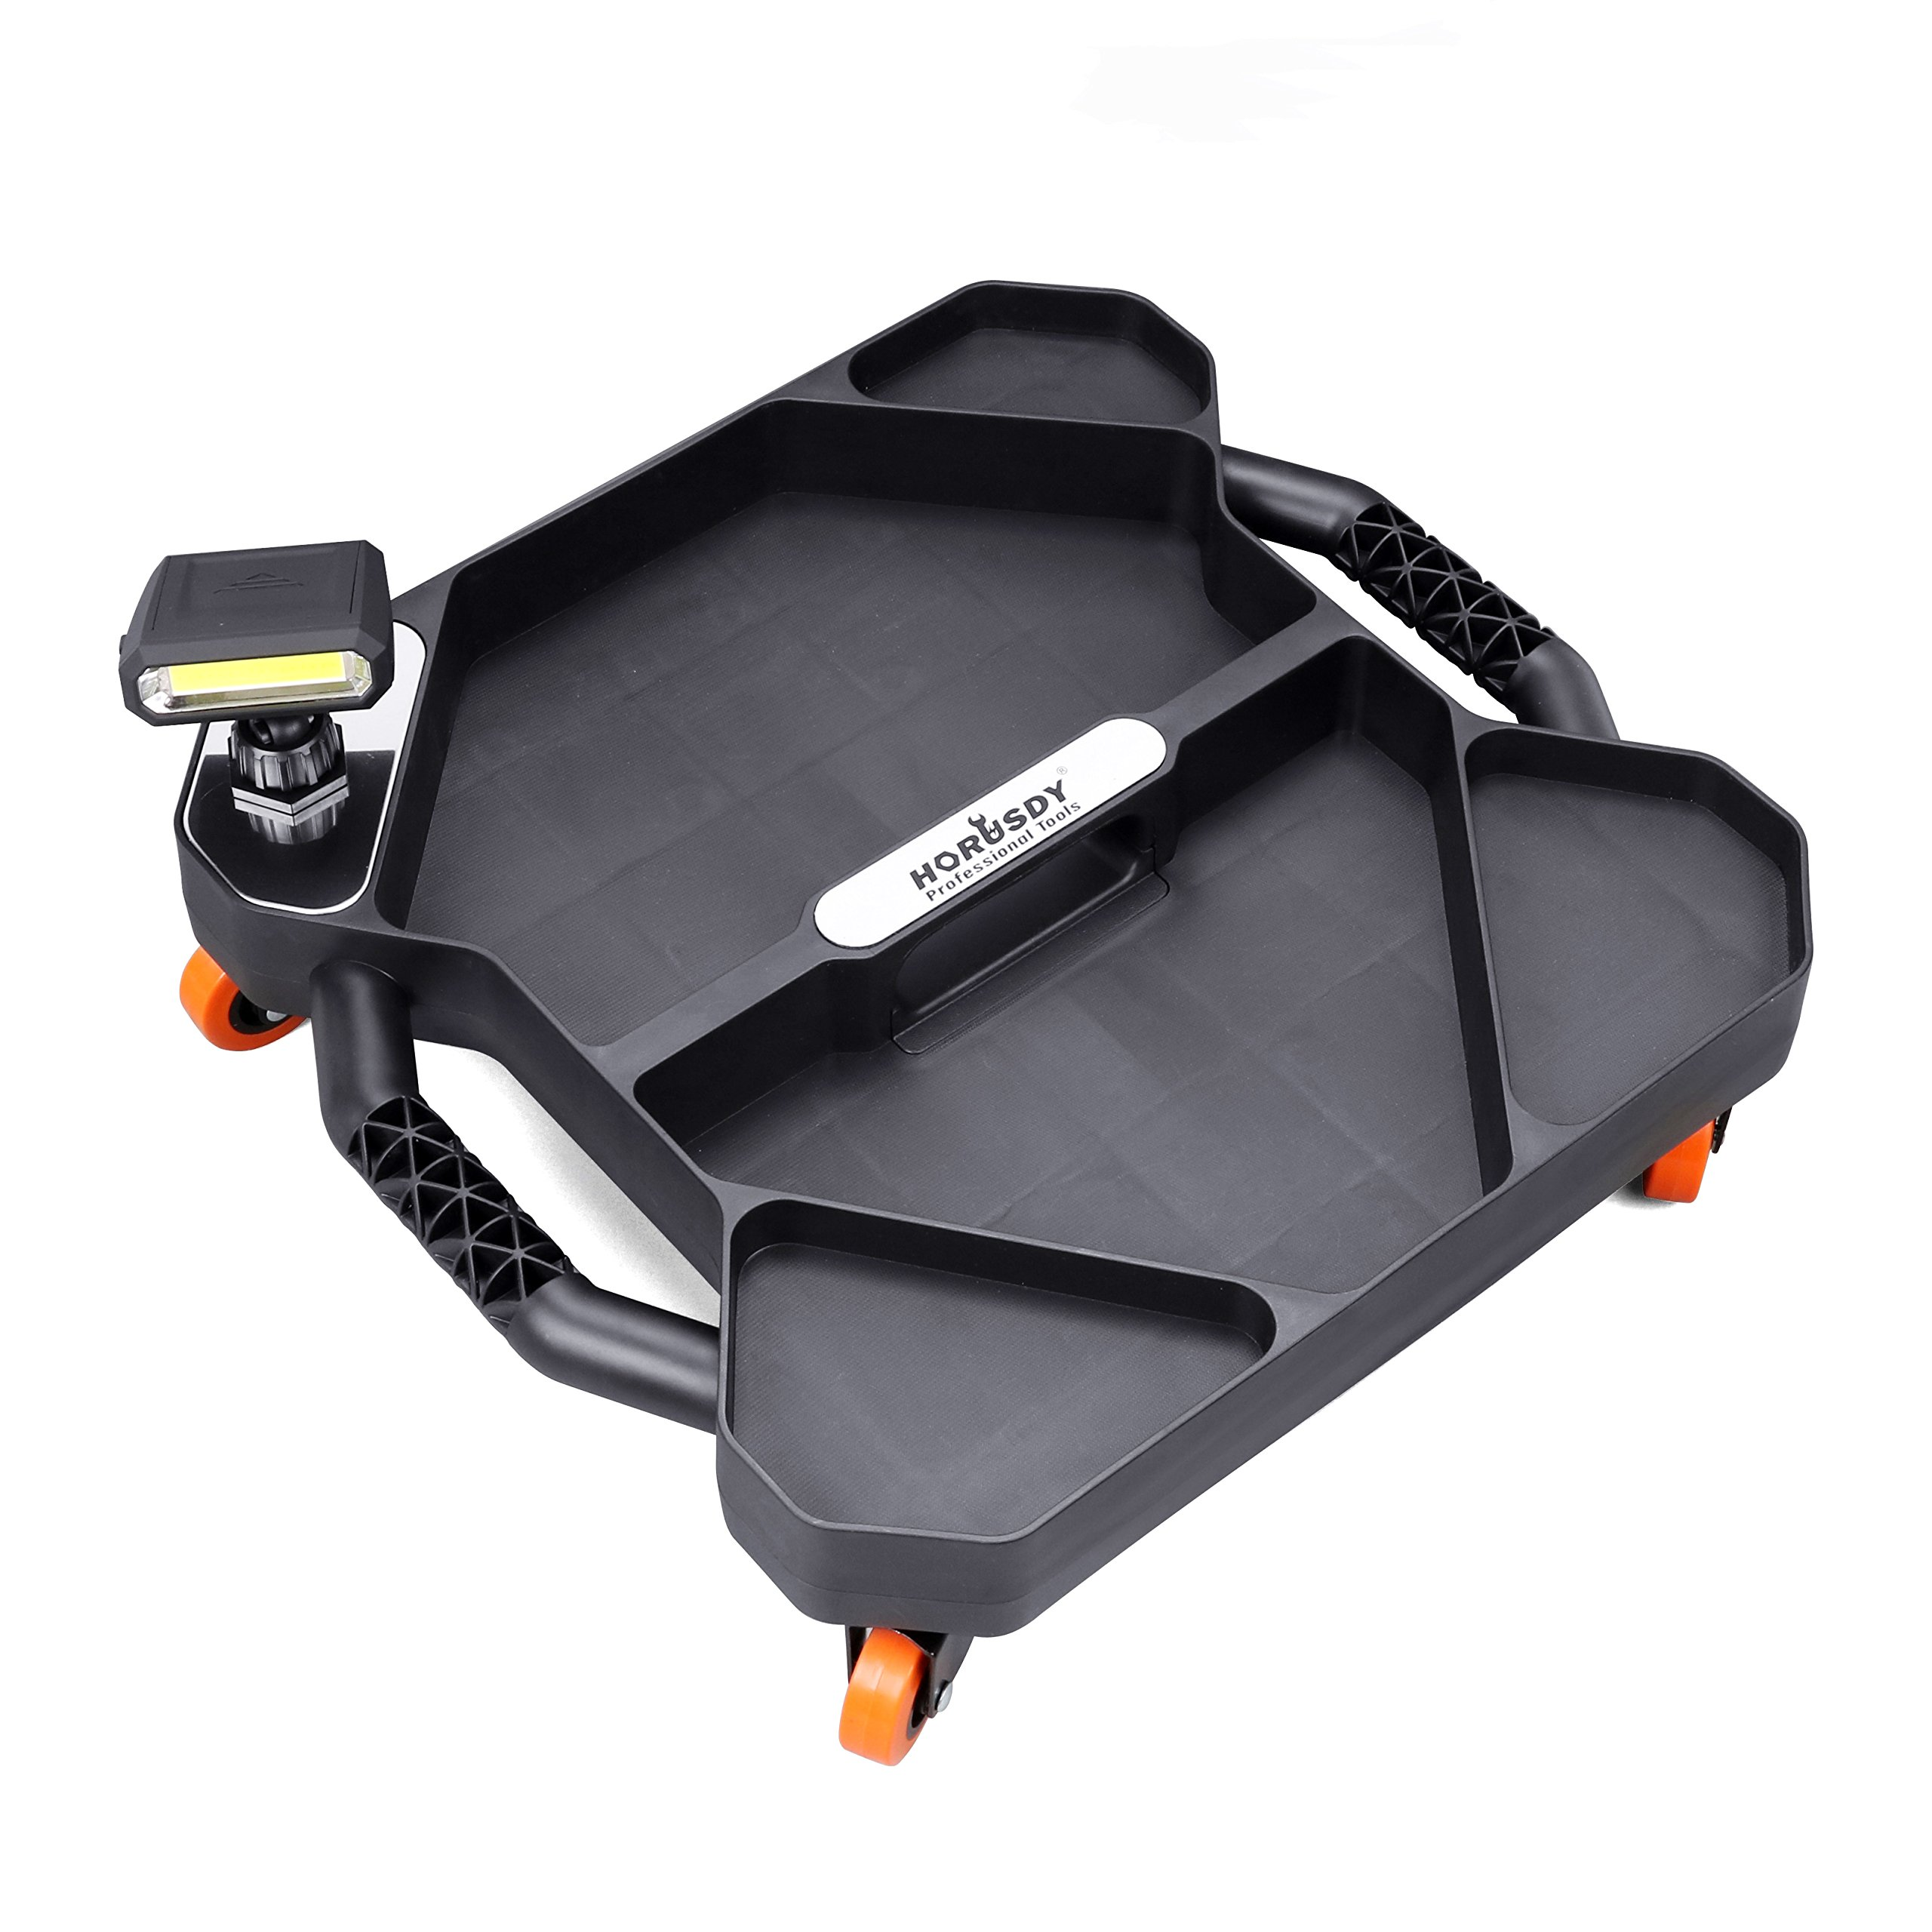 HORUSDY Car Creeper Tool Tray, Garage Tools, Magnetic LED Rotating Work Light, Professional Automotive Creeper by HORUSDY